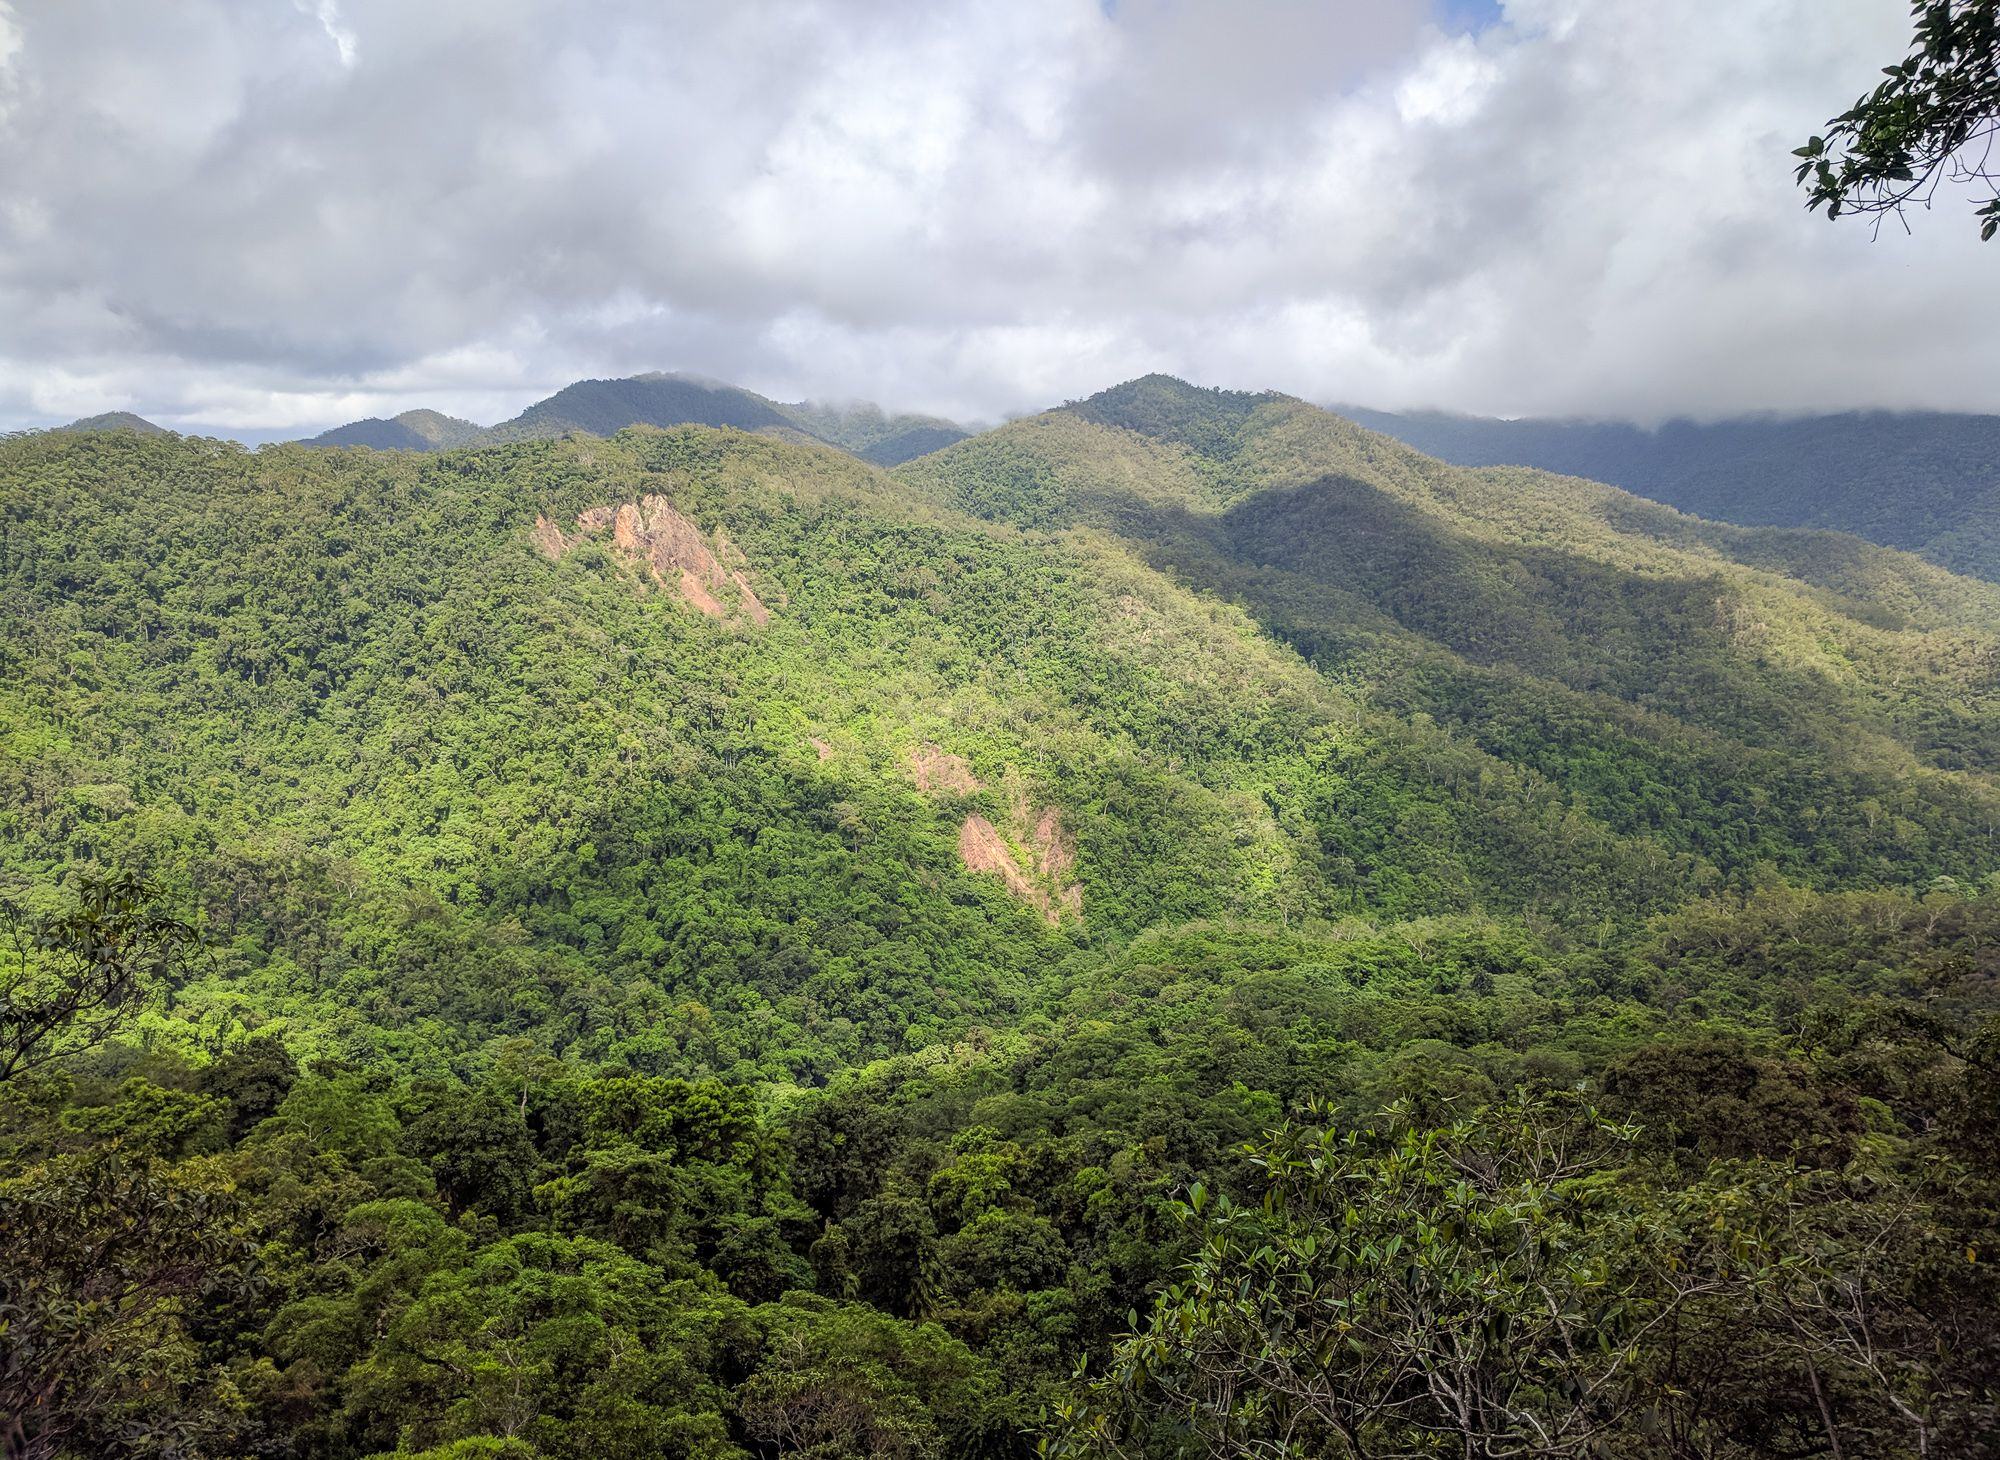 View from Circle View Mountain, Paluma Range National Park